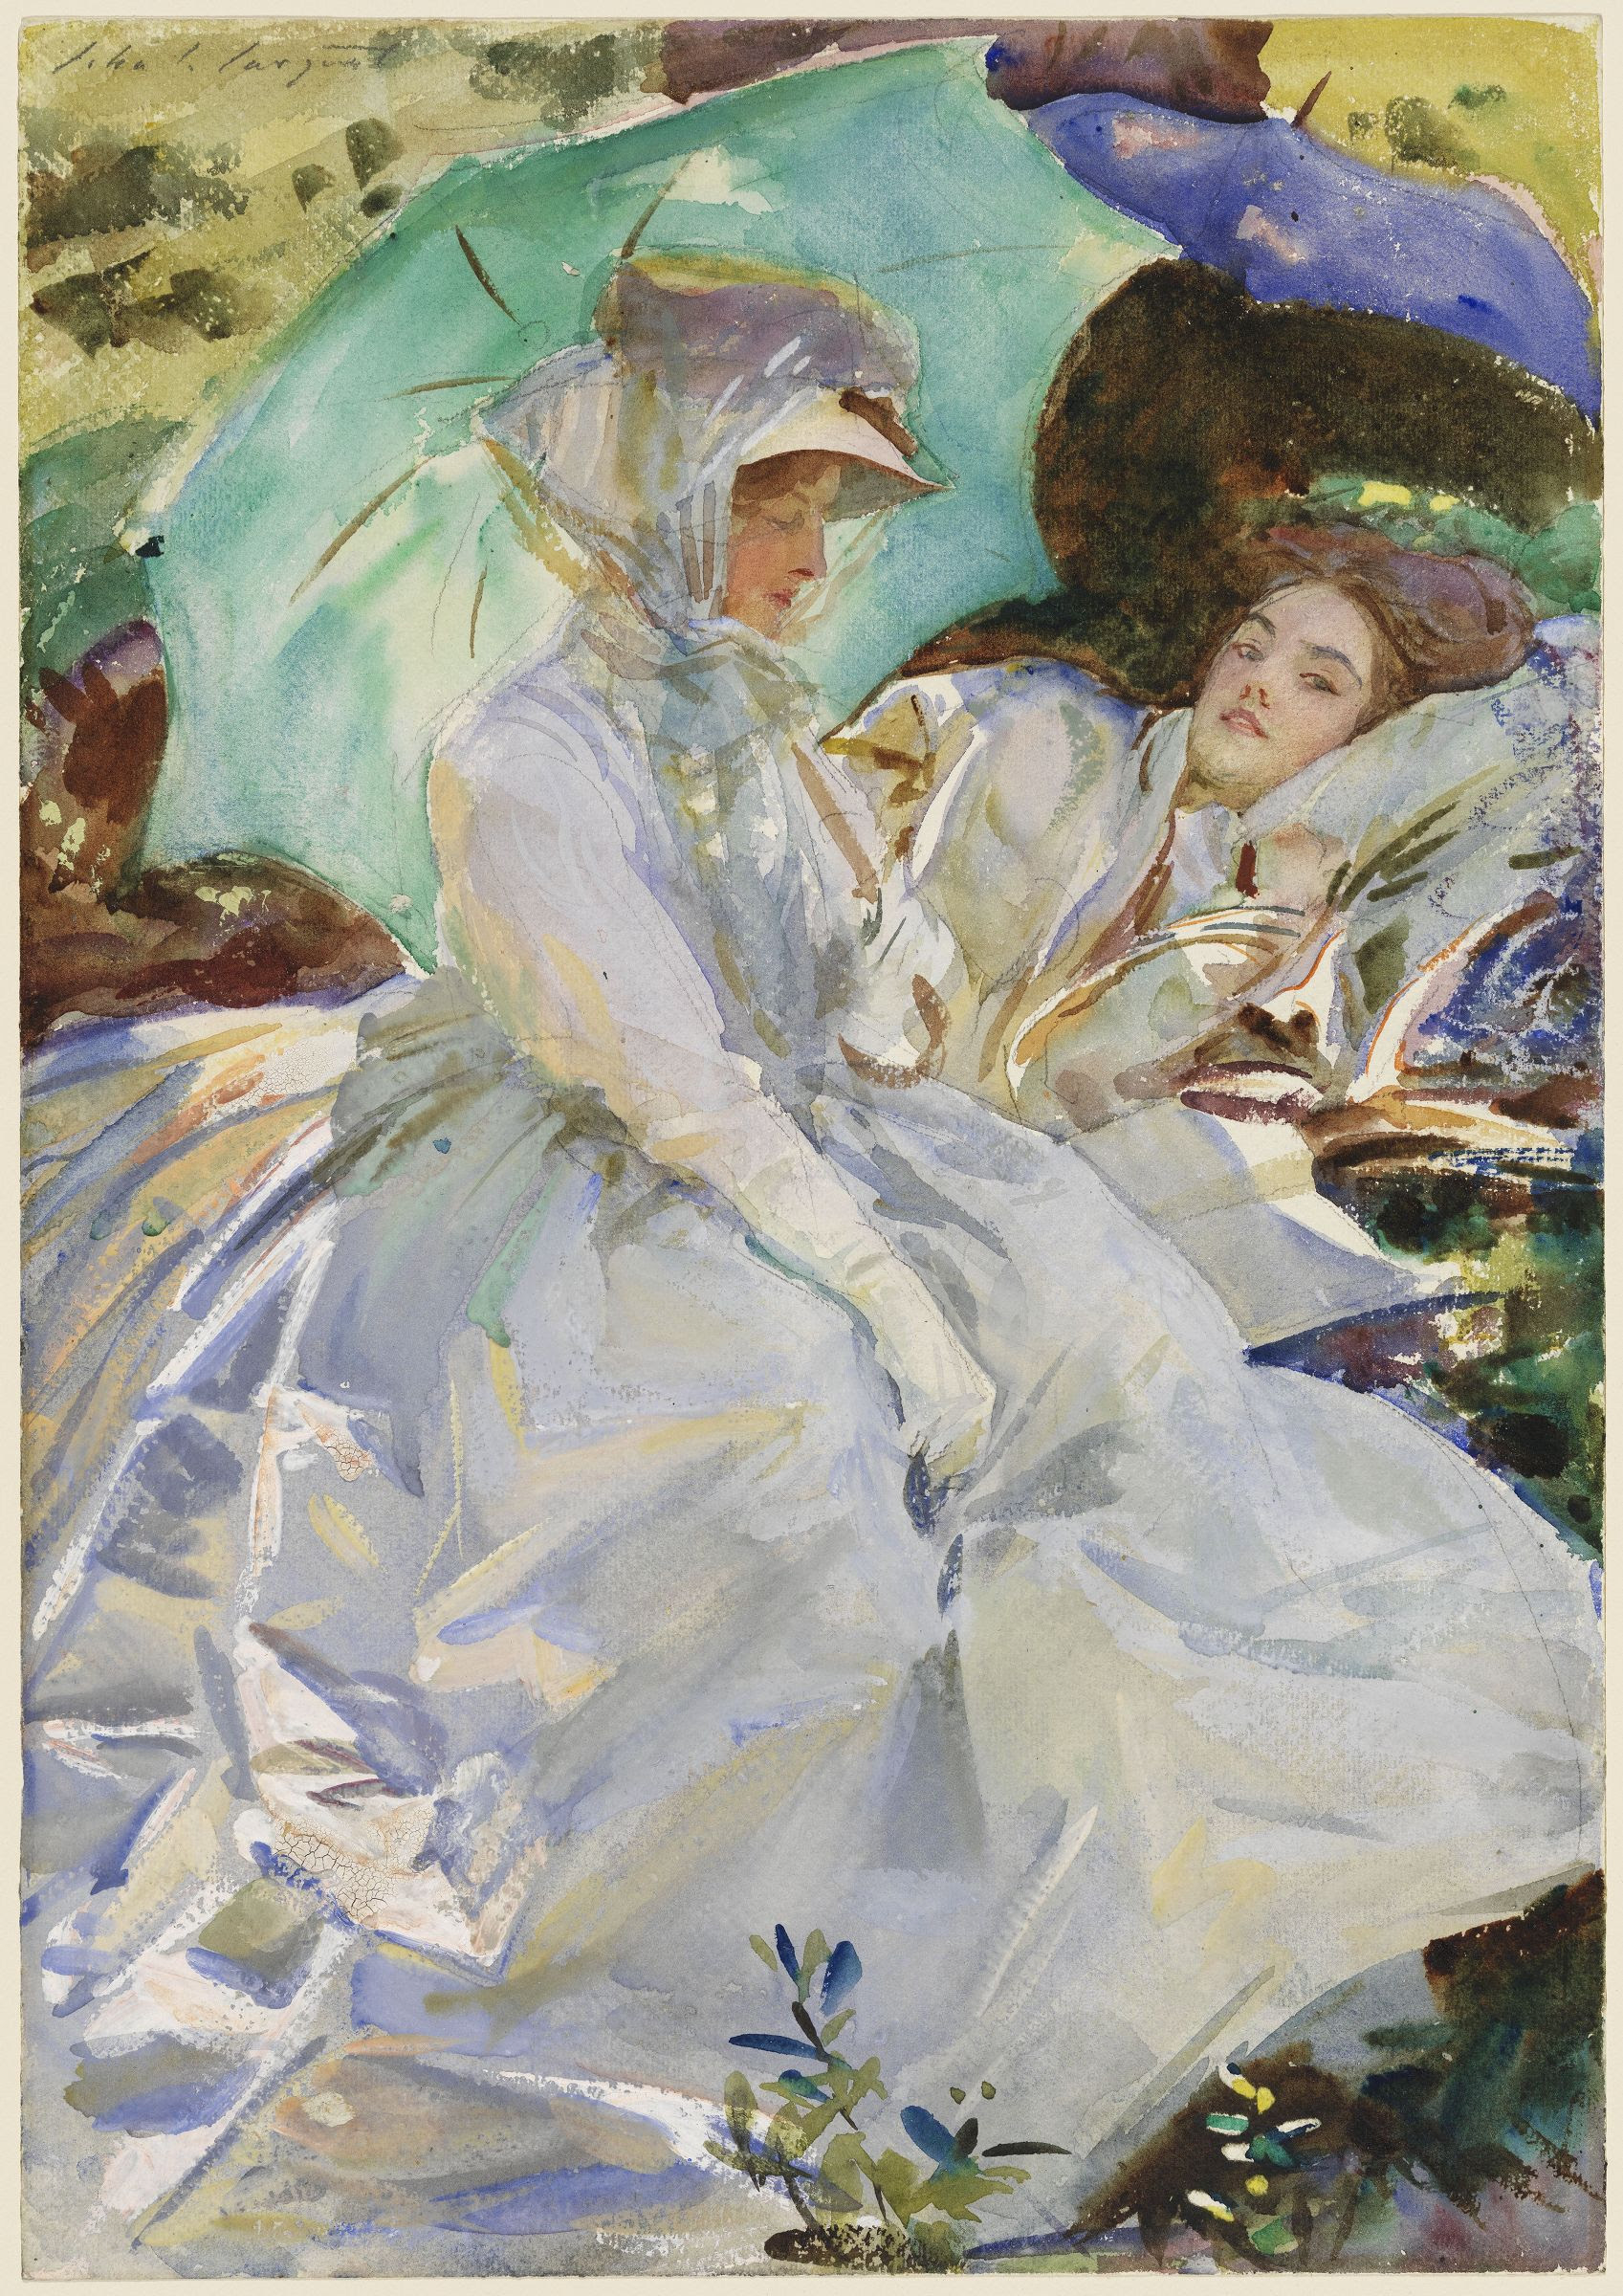 Watercolor art society houston tx - John Singer Sargent The Watercolors